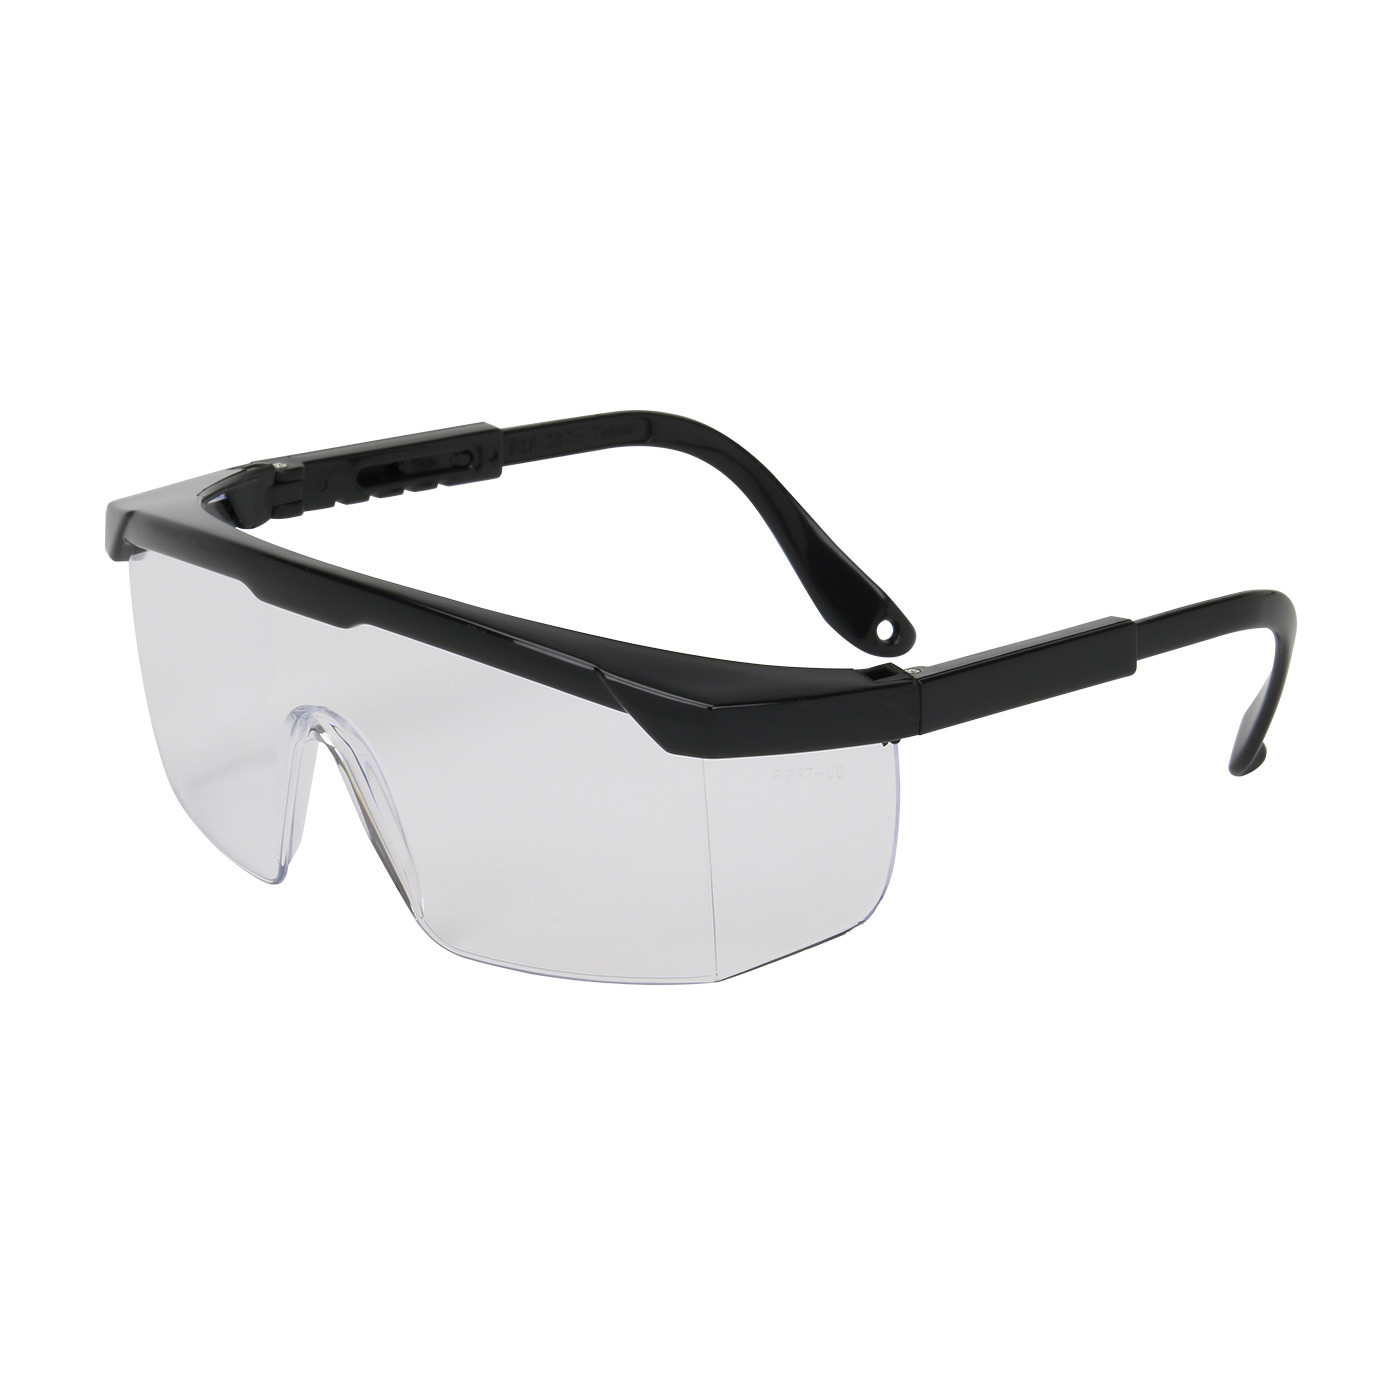 Semi-Rimless Safety Glasses with Black Frame and Clear Lens, Black, OS